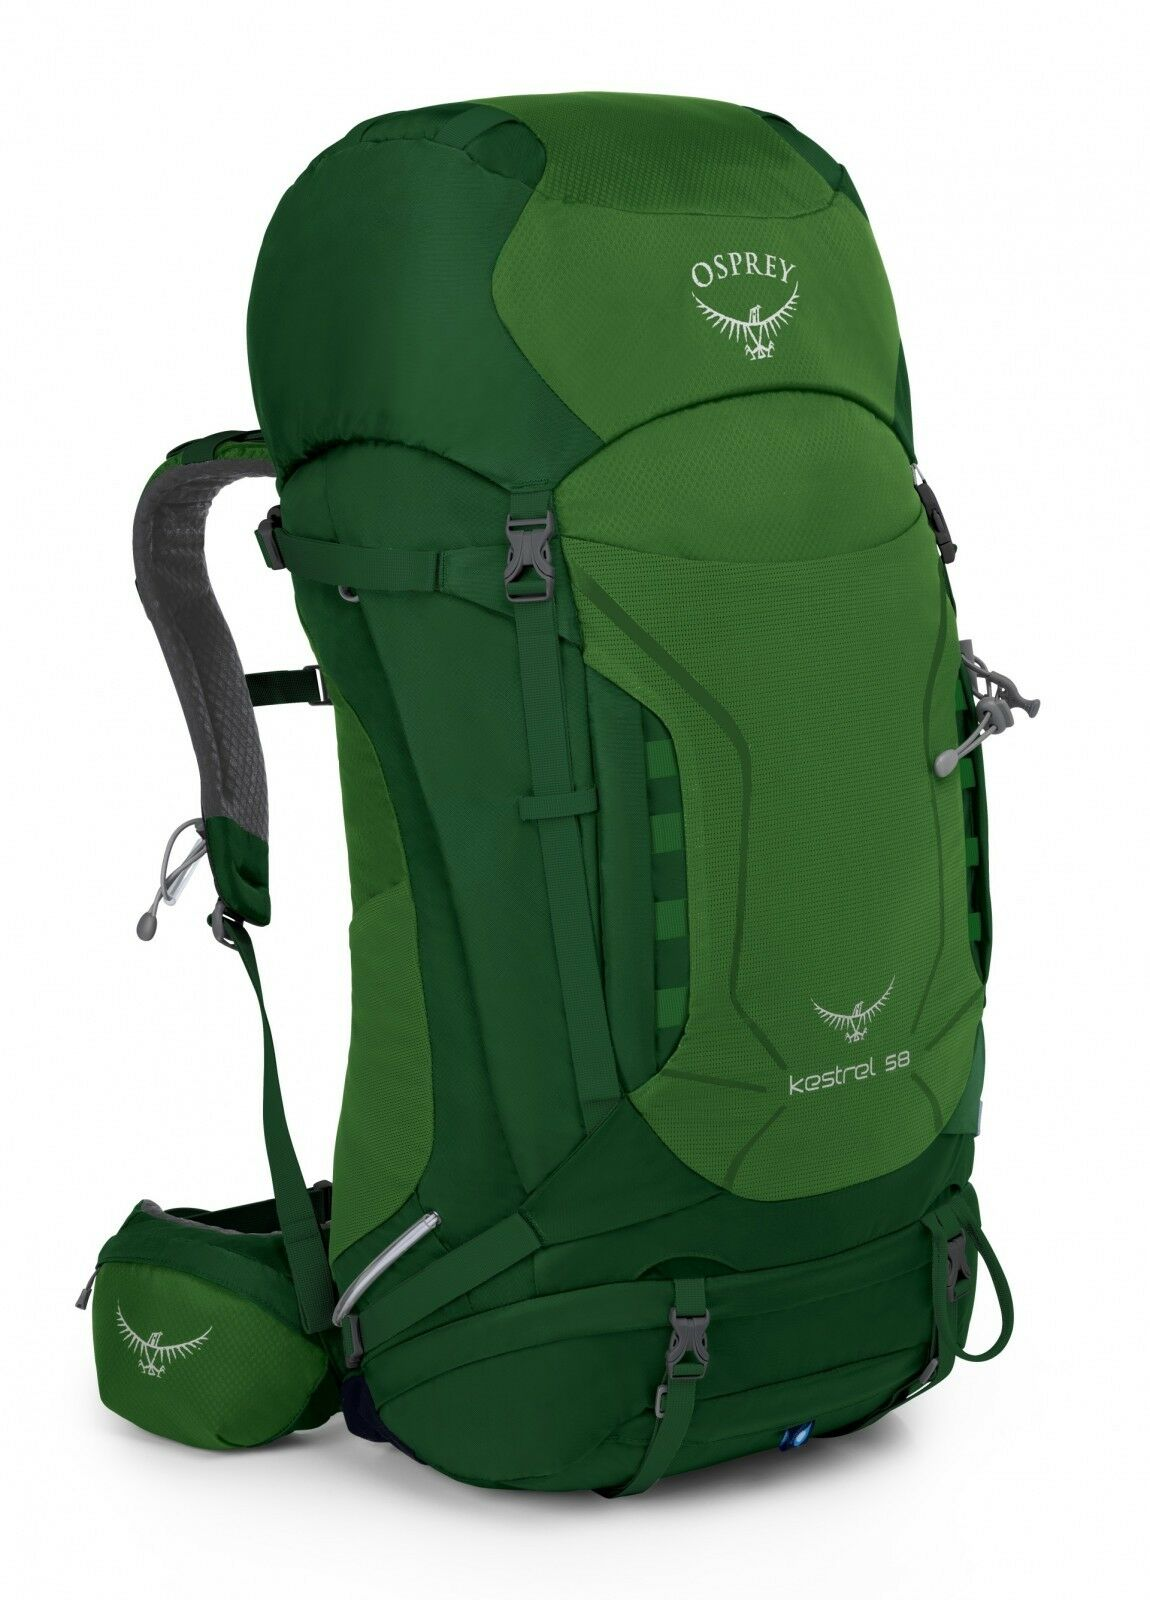 Osprey Zaino Kestrel 58 S   M Jungle verde